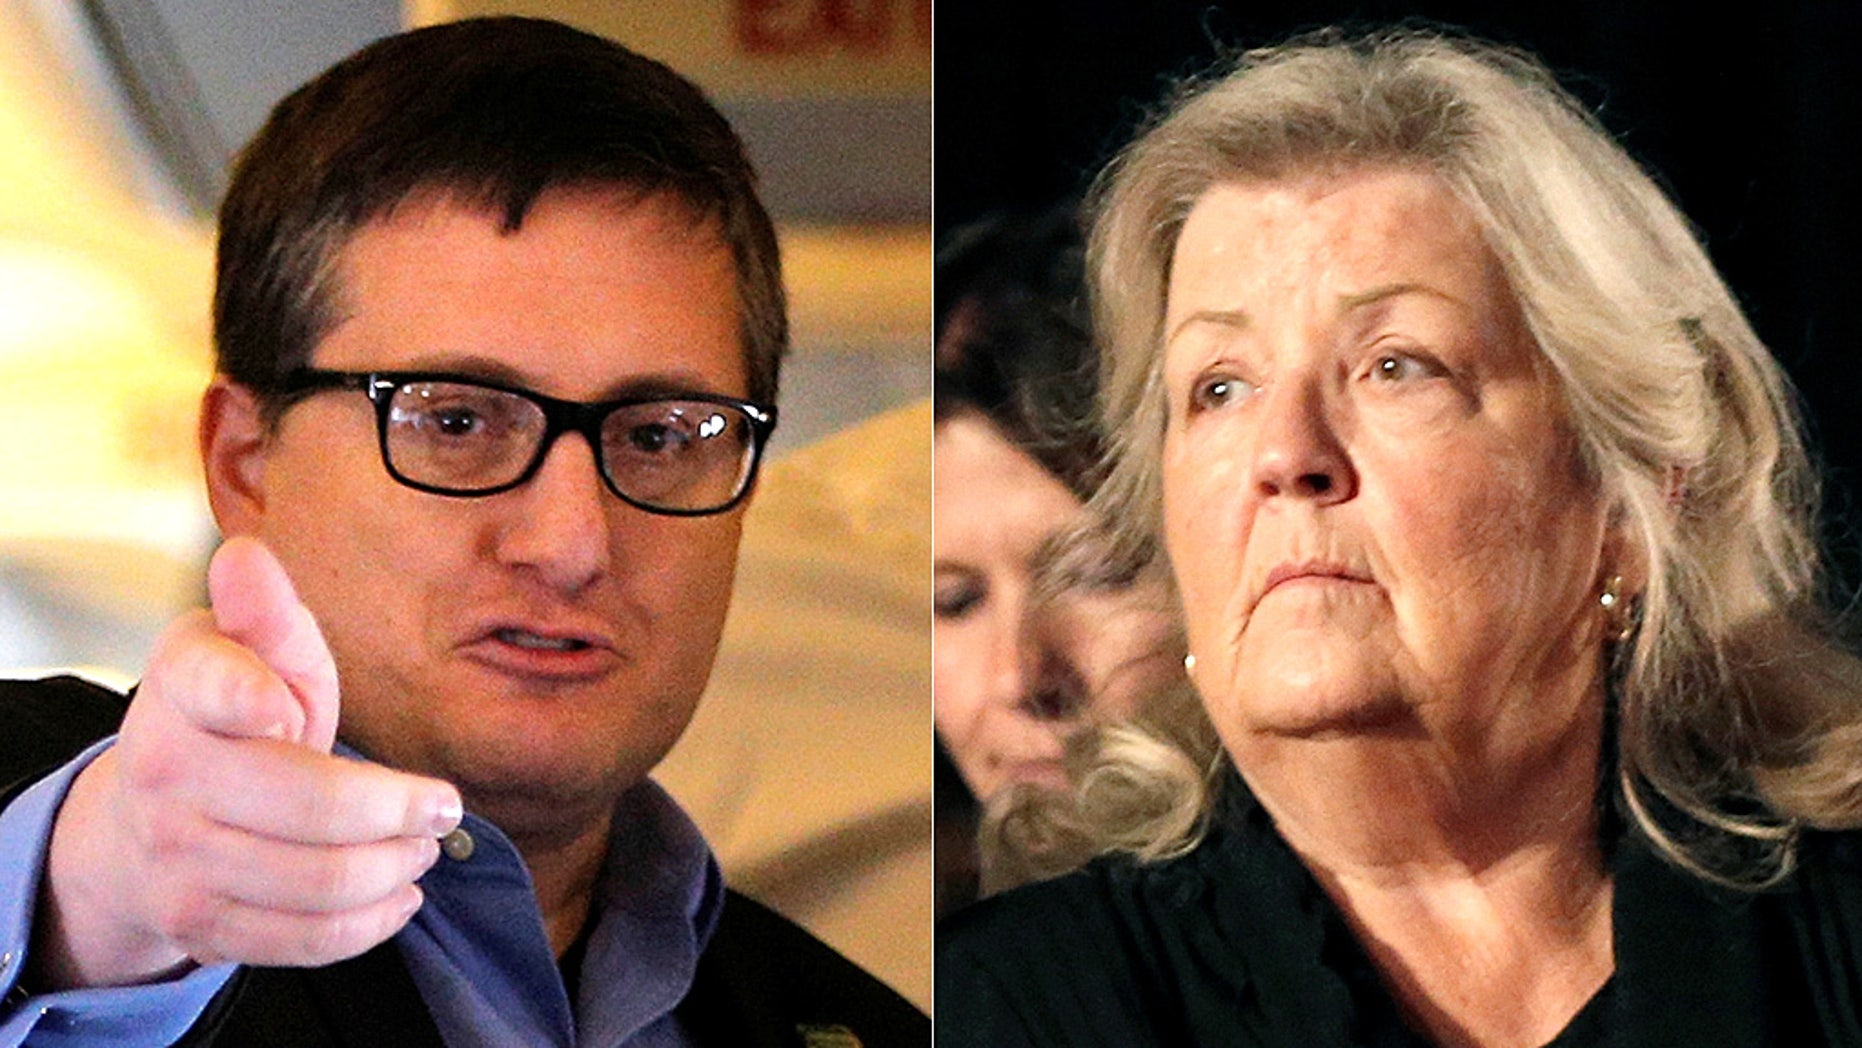 Philippe Reines says he does not believe Juanita Broaddrick's allegations. <br>